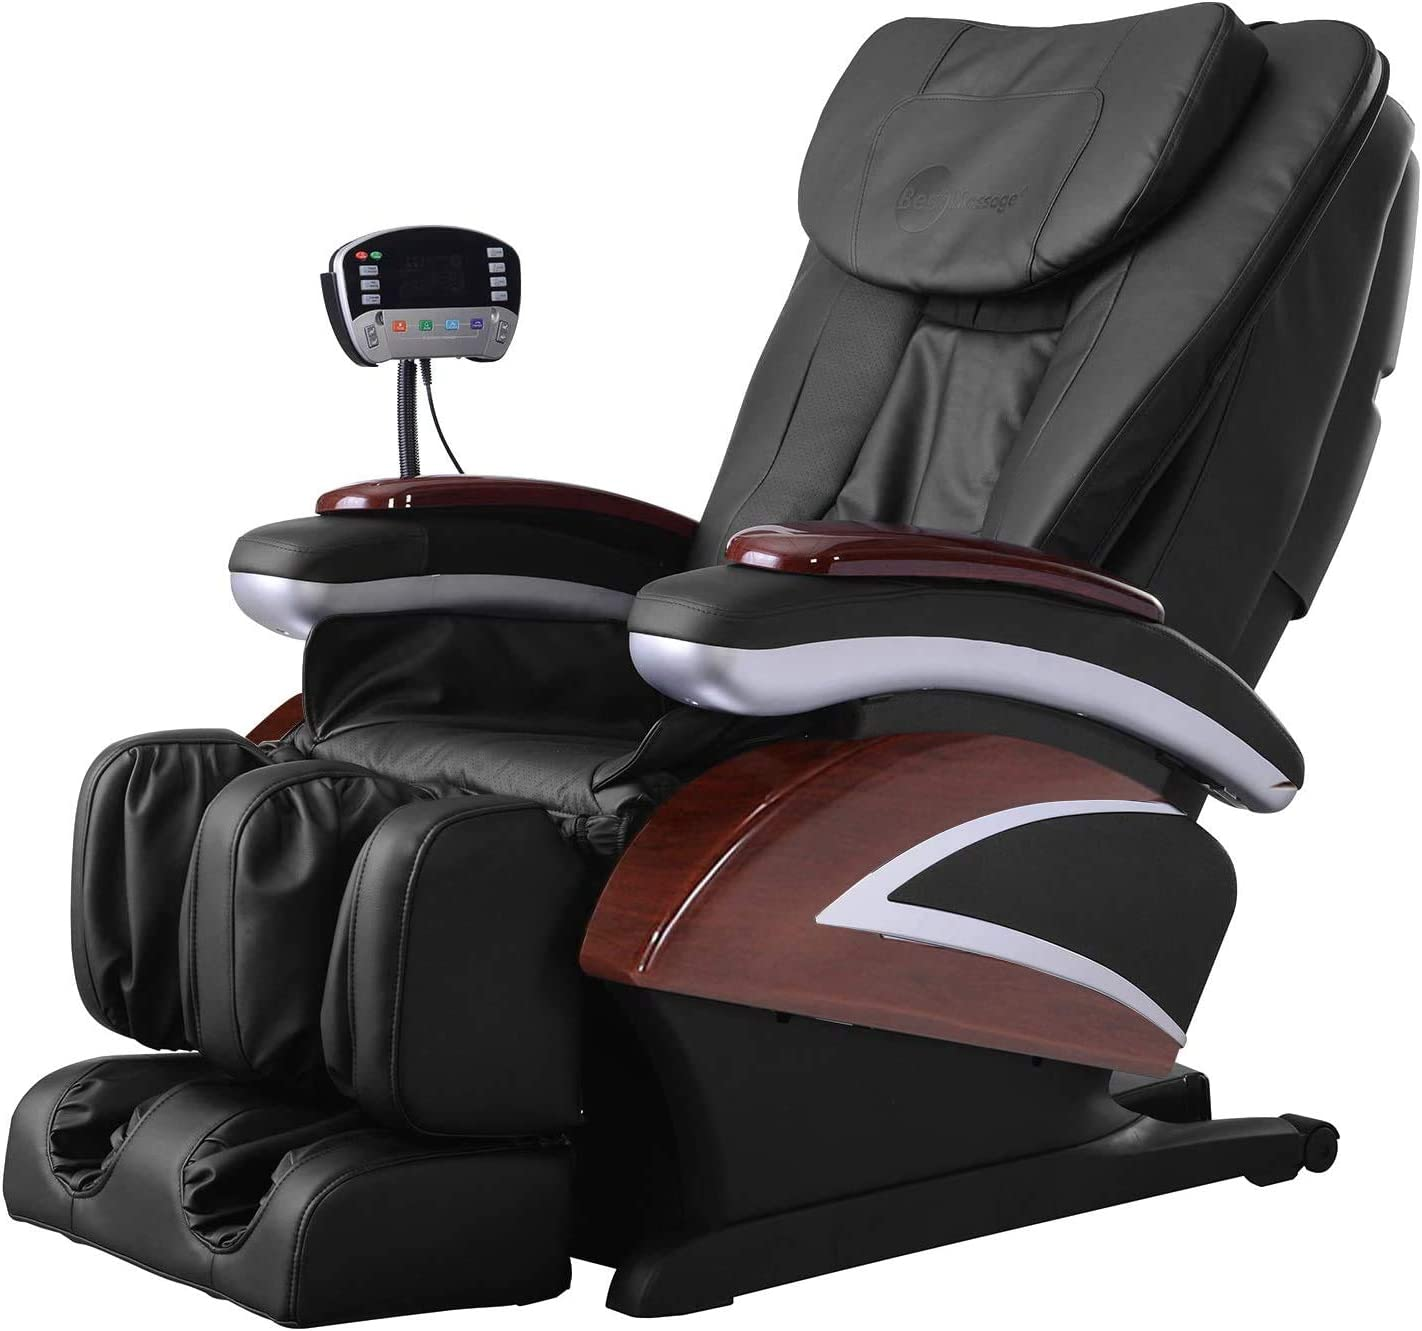 Full Body Electric Shiatsu Massage Chair Recliner with Built-in Heat  Therapy Air Massage System Stretch Vibrating for Home Office Living Room